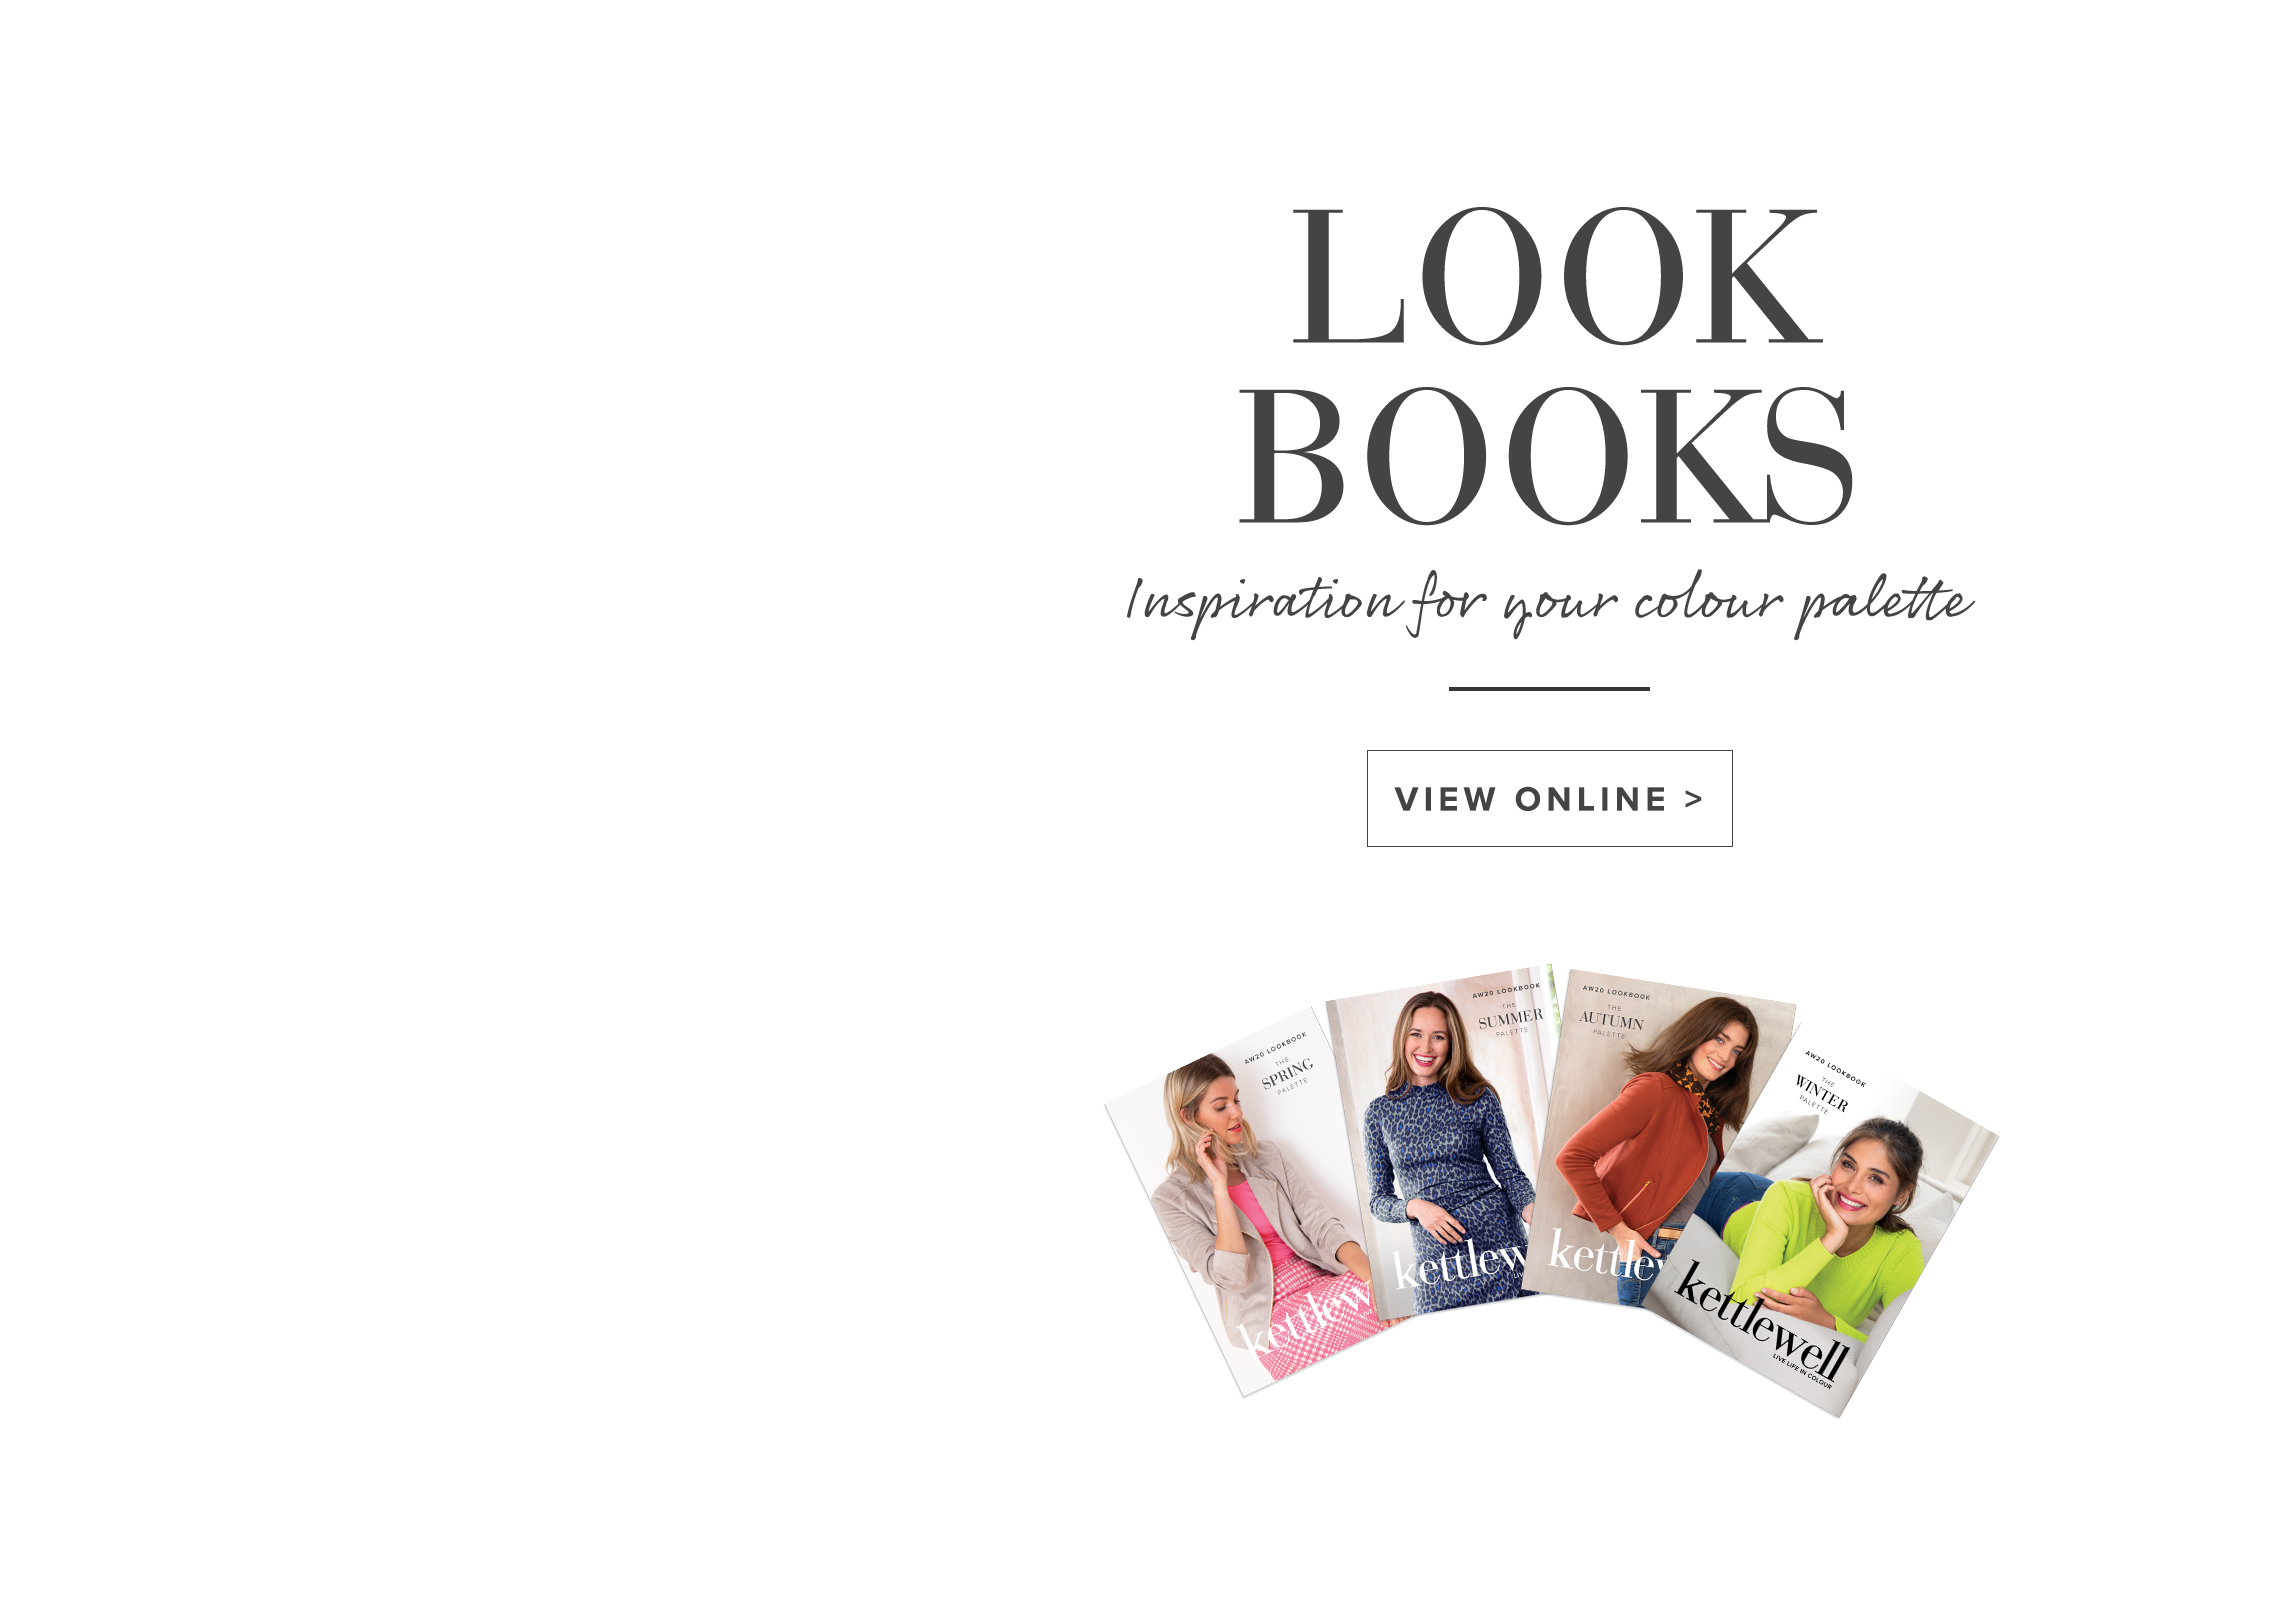 raw-main_overlay_lookbooks_a_with_covers.png